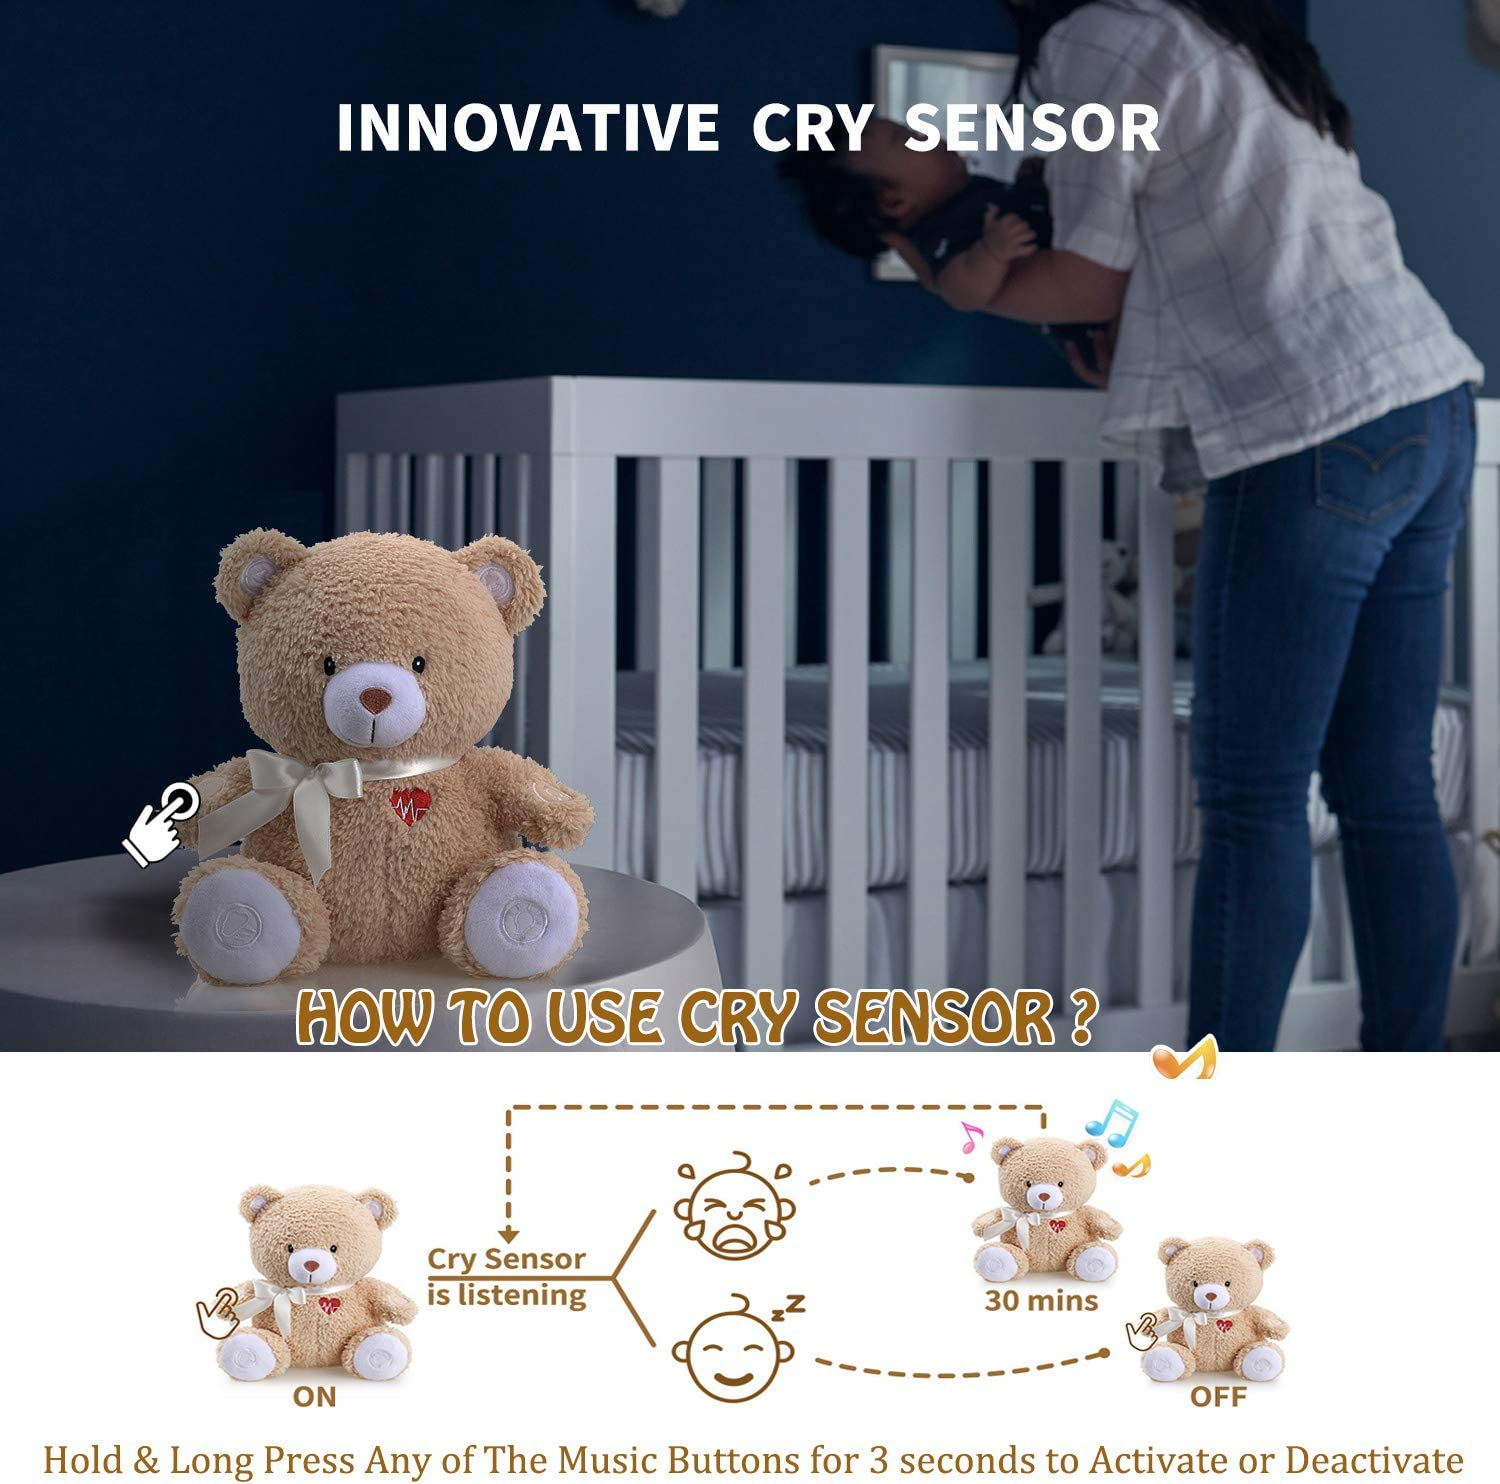 Baby Cry Sensor Honey Bear by BEREST Baby Sleep Soother Sleeping Aid White Noise Machine Infant Slumber Buddies Bear Toy Nursery Decor with Night Light Mom/'s Heartbeat 4 Sounds Therapy